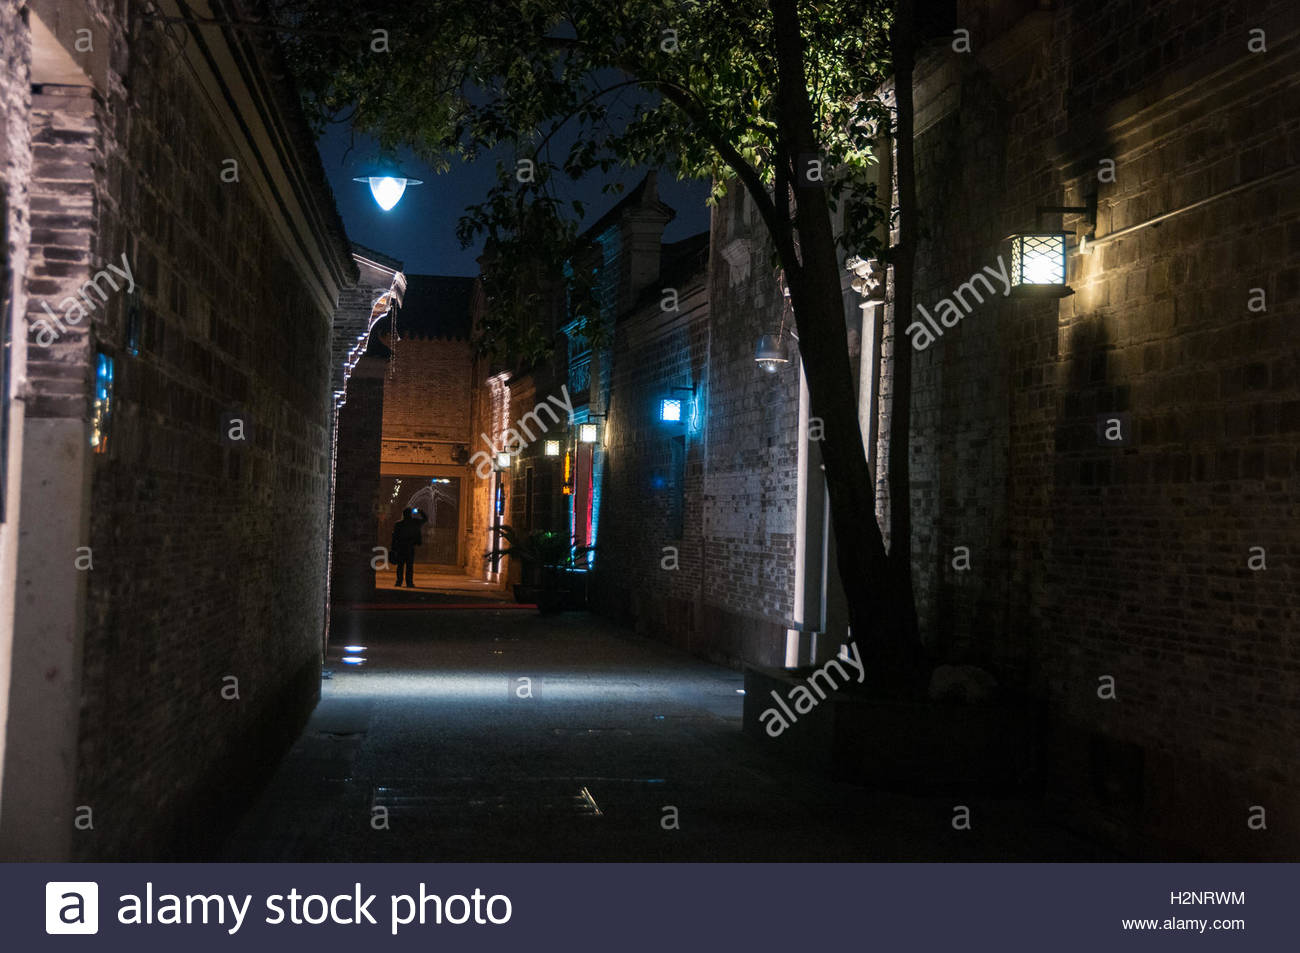 A lone man takes a picture with a mobile phone at night in a back alley of the Moon Lake Flourishing Garden, Ningbo - Stock Image